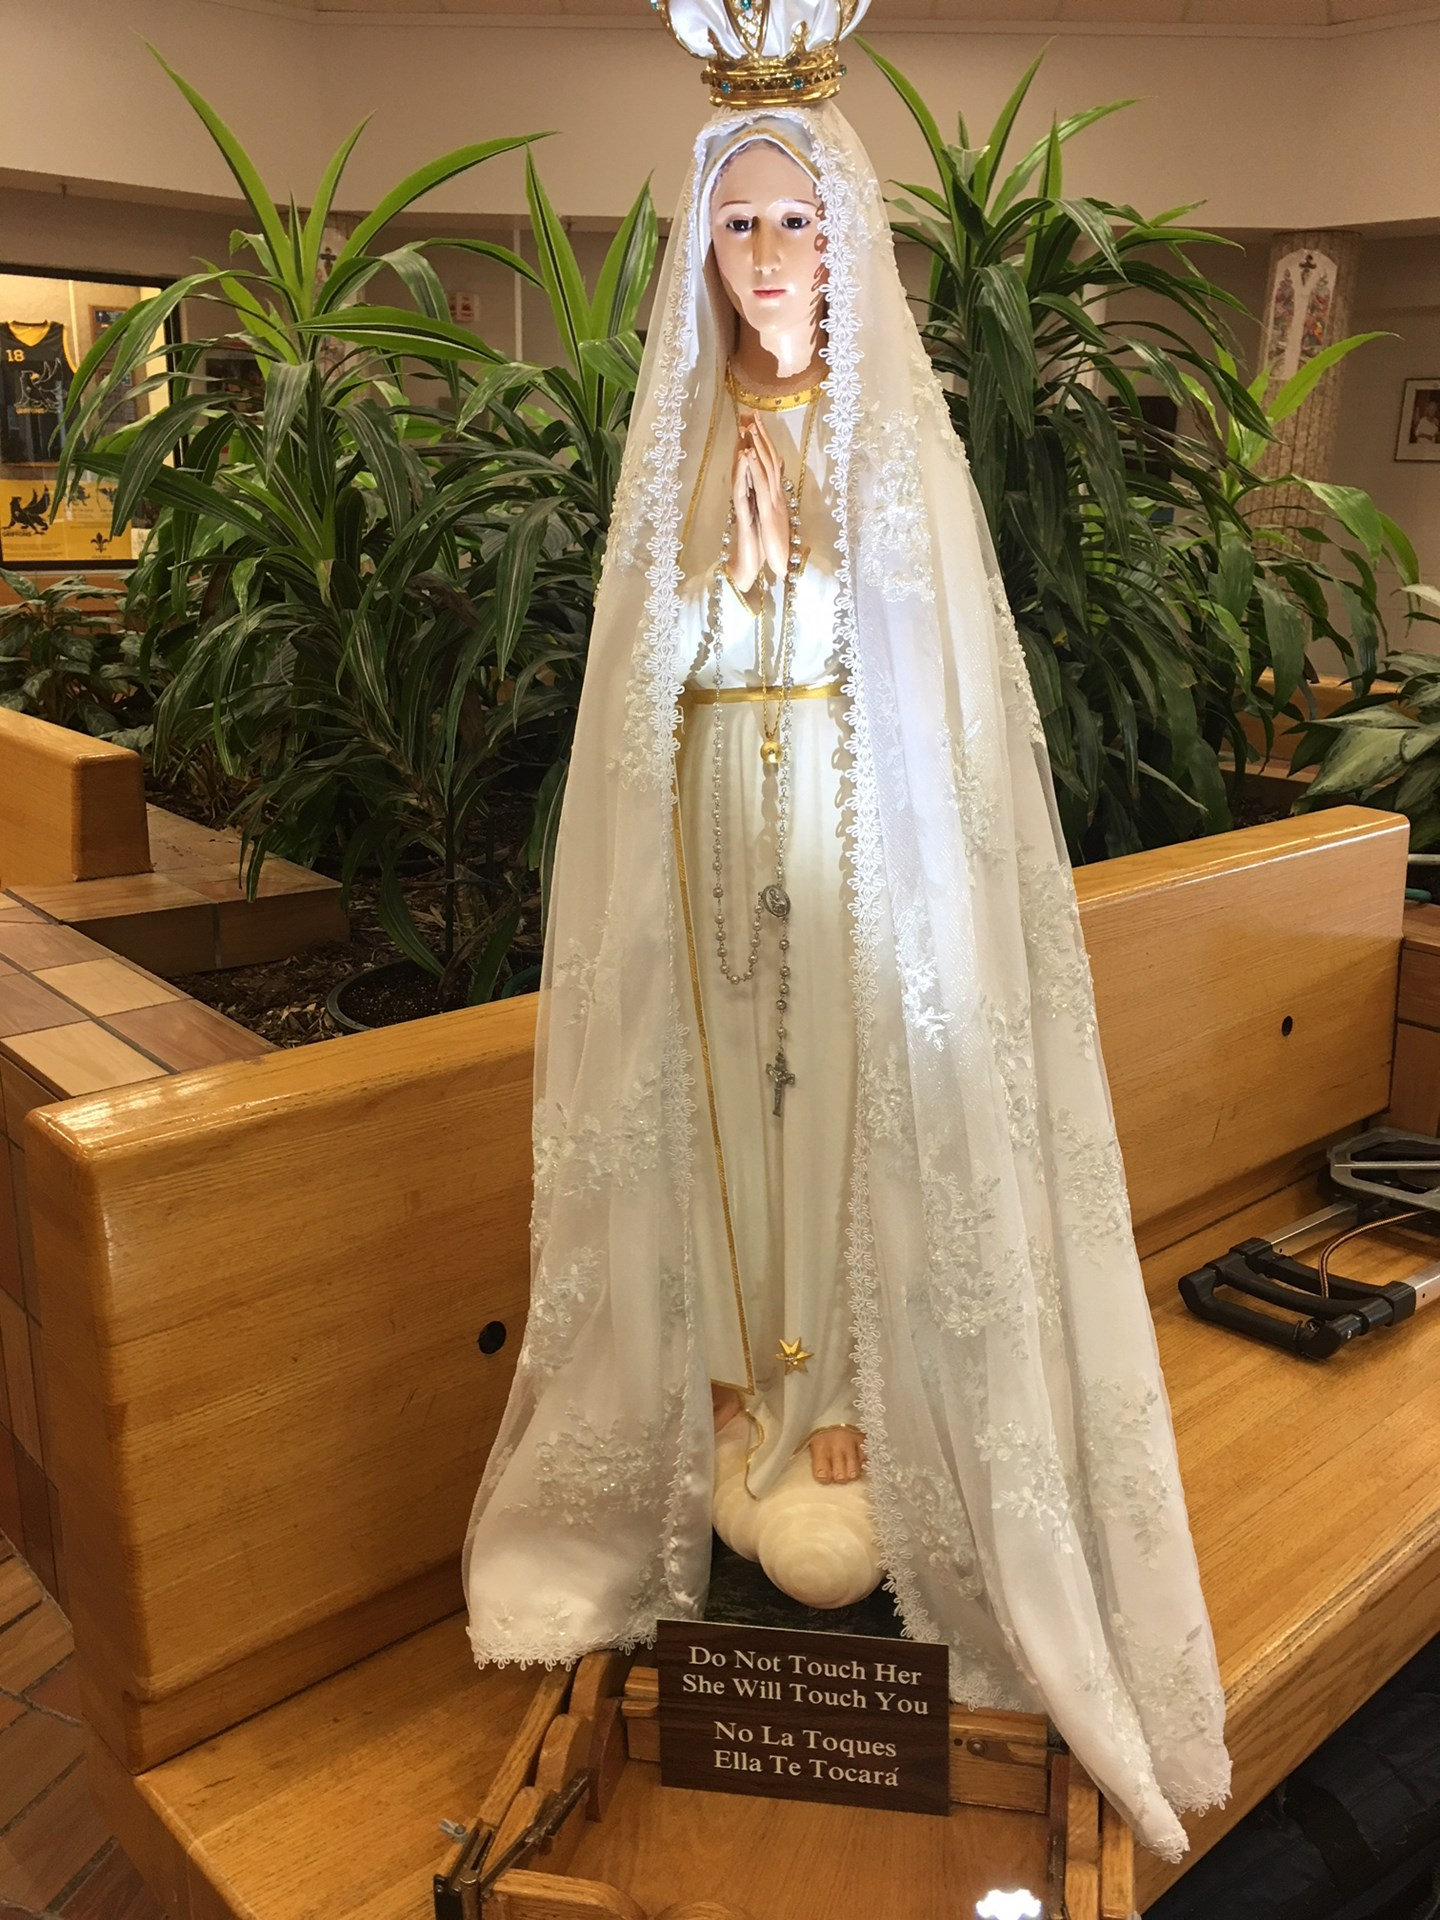 Our%20Lady%20of%20Fatima%20Statue.JPG